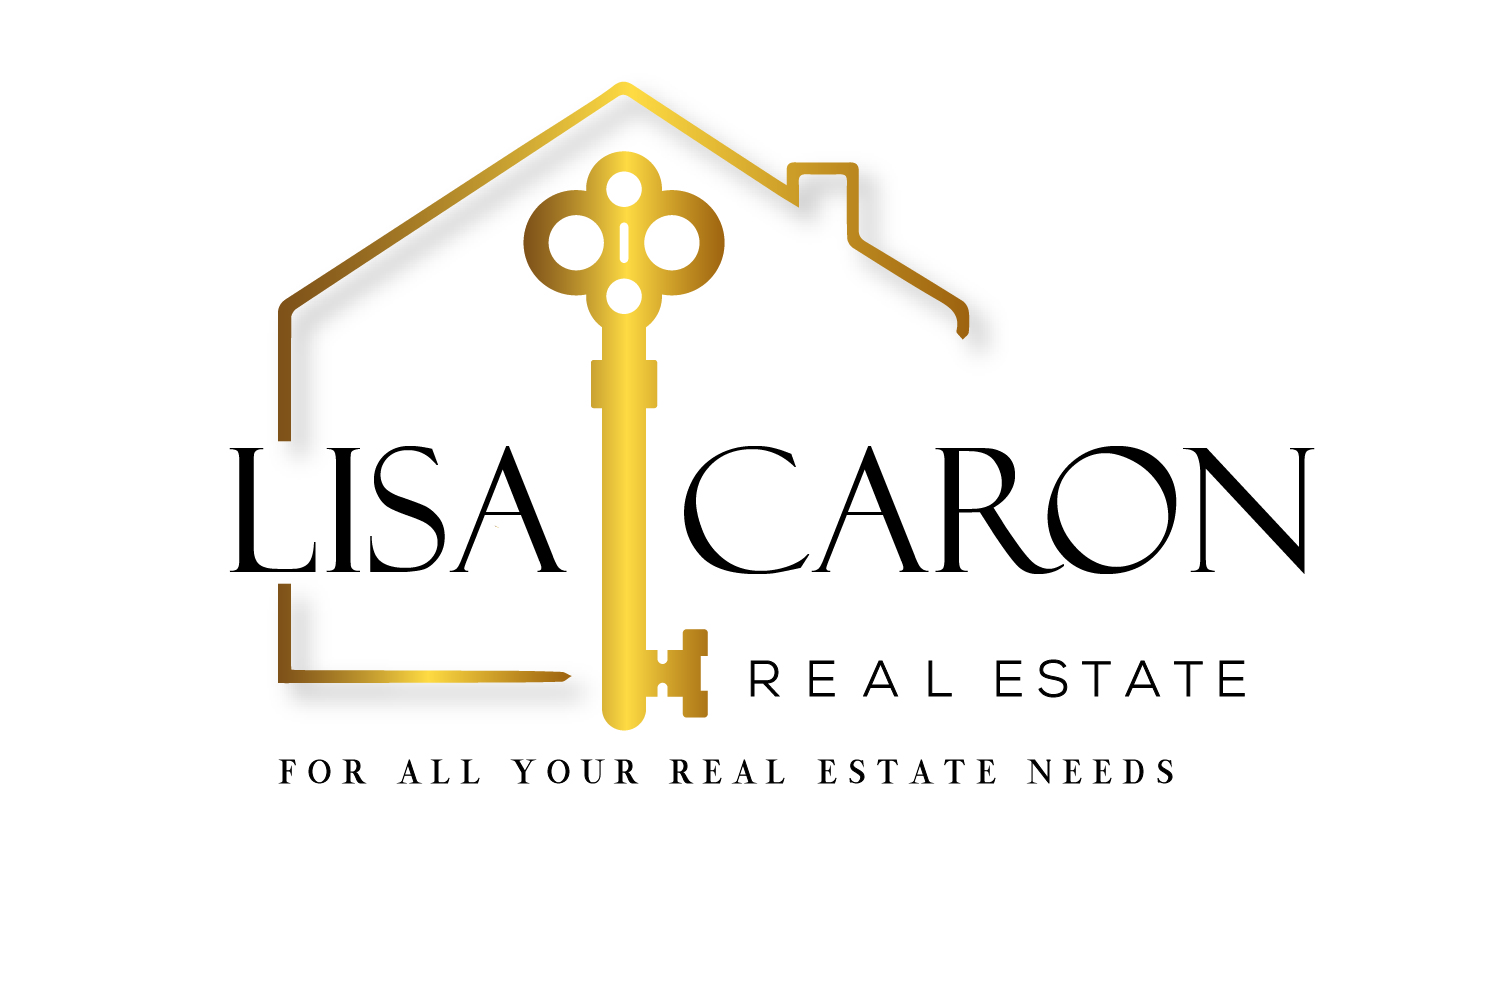 Lisa Caron Real Estate